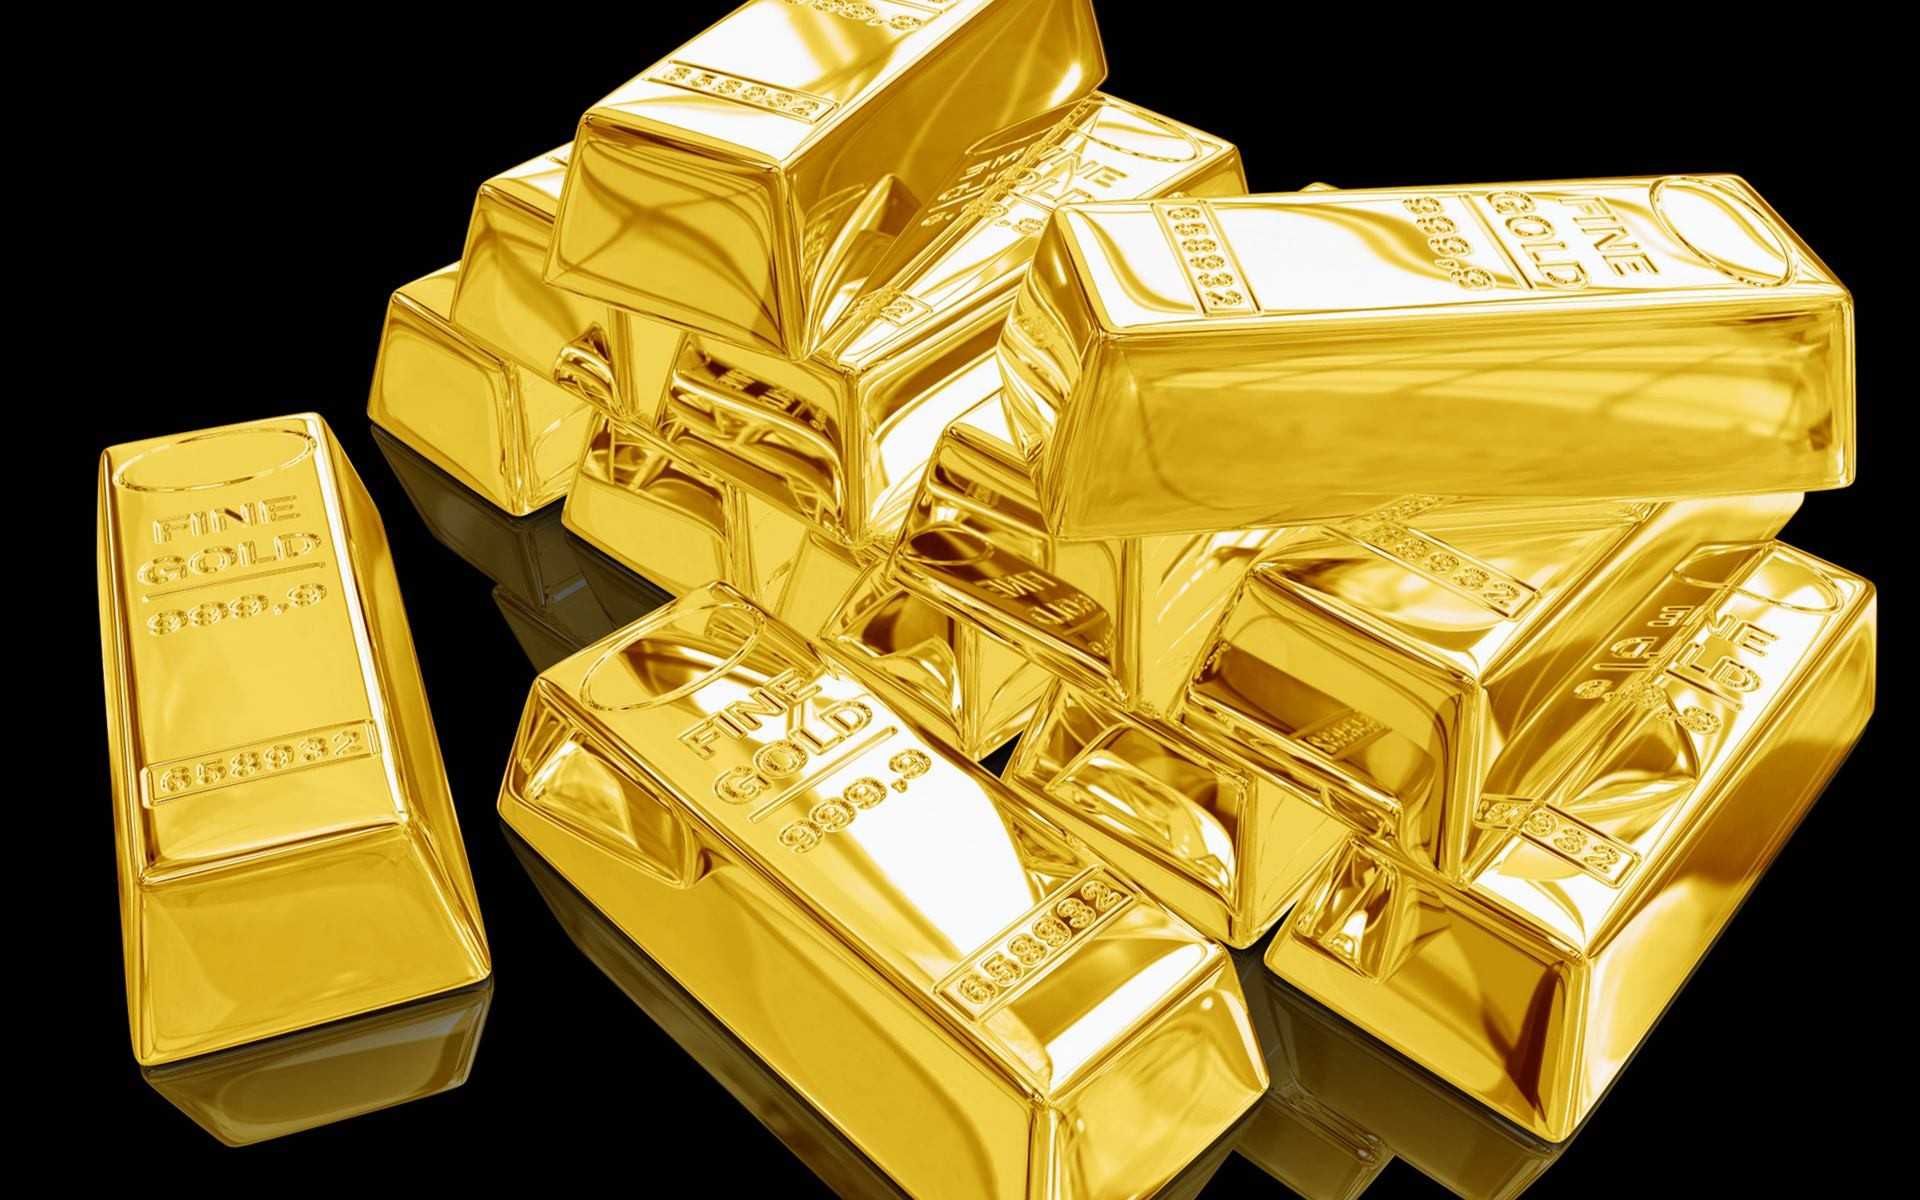 gold bloc, ingot of gold with black background download #5262